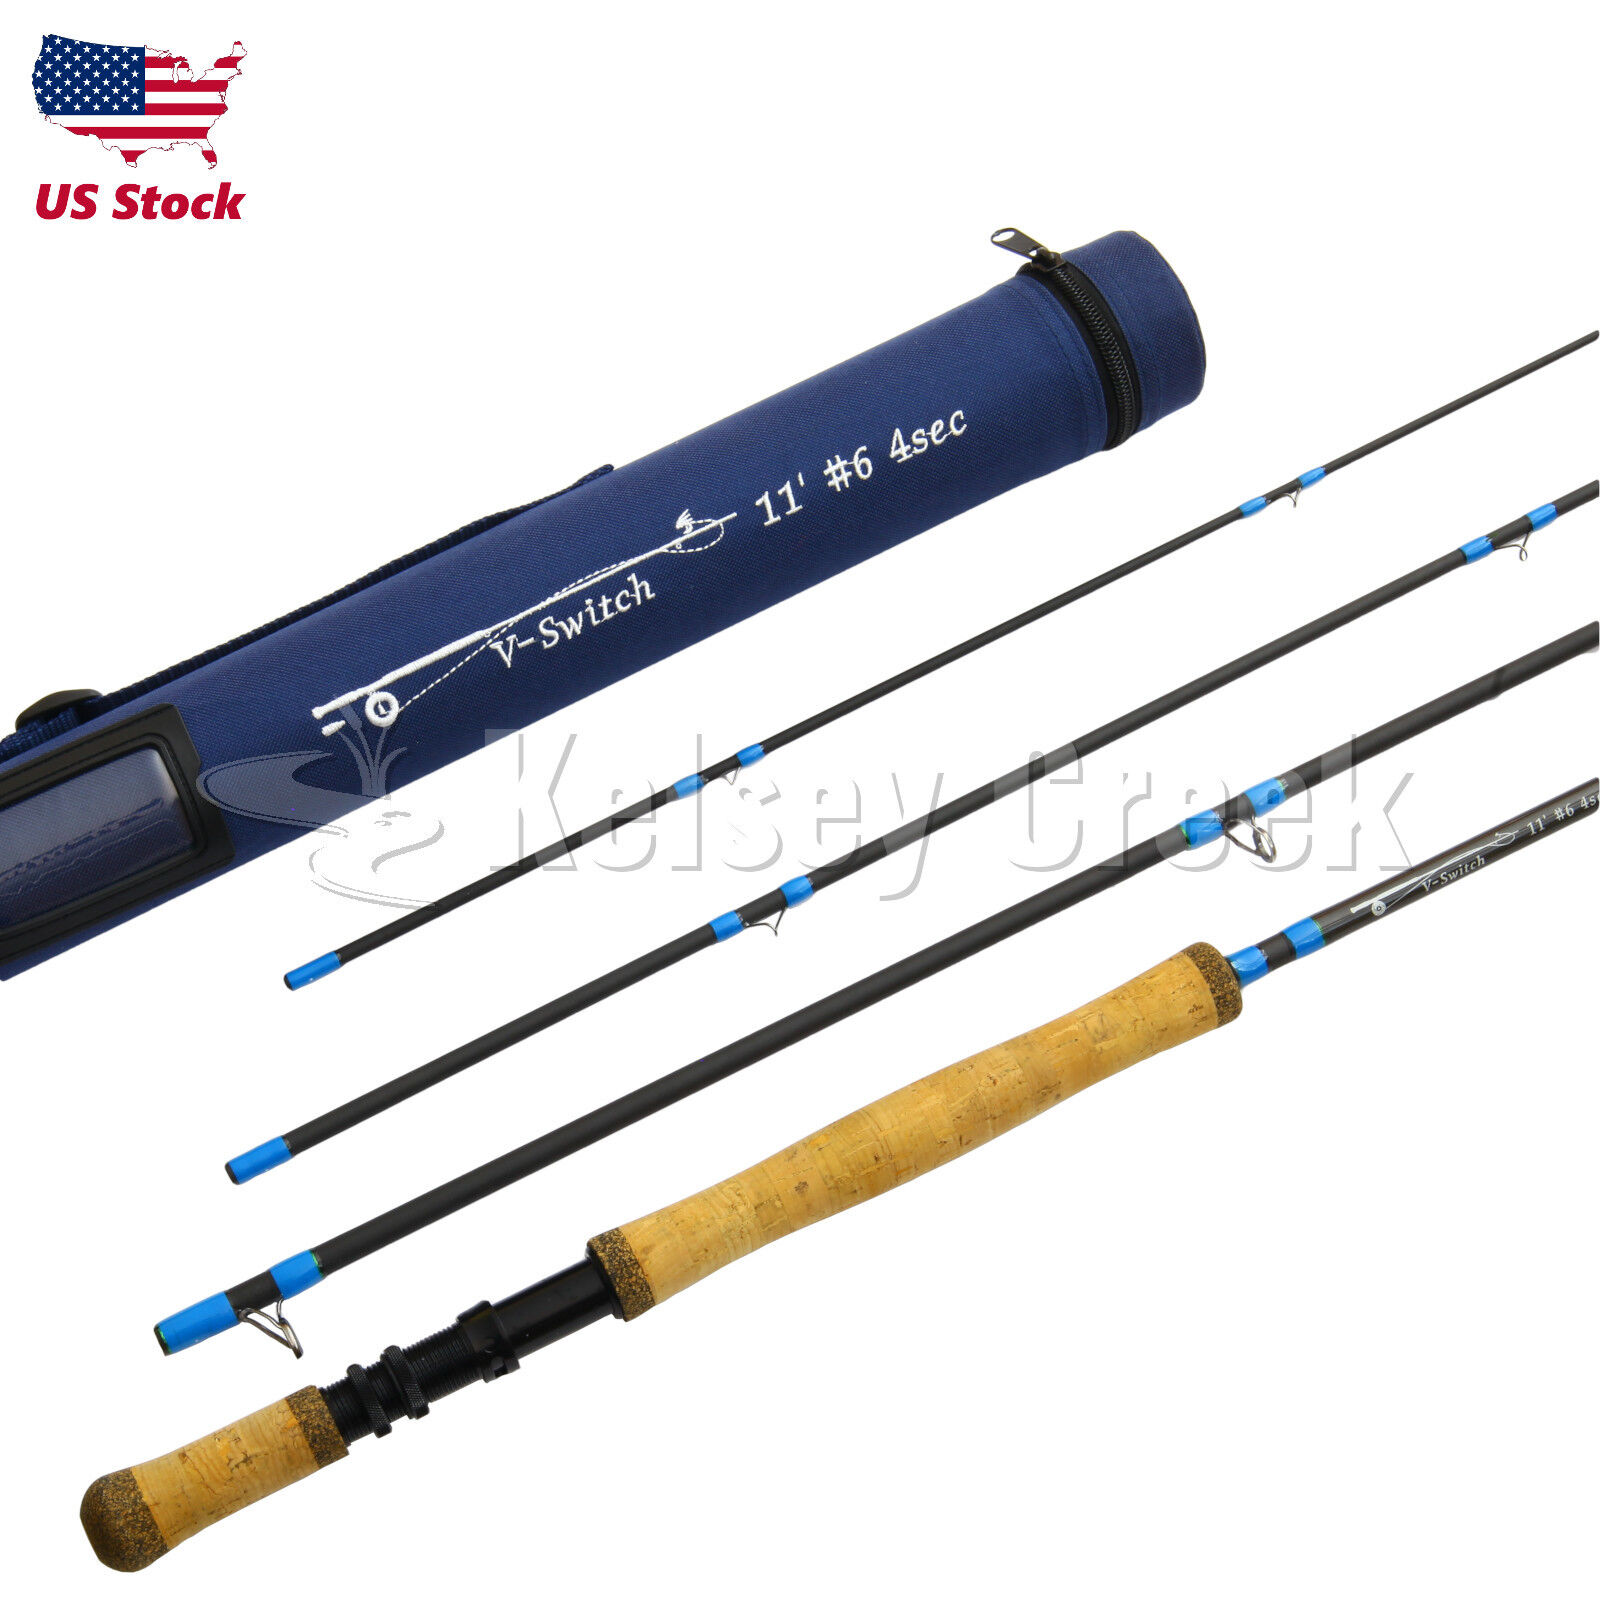 Maxcatch Switch Rod 10.5ft-11.5ft, 5wt-9wt, IM10 Carbon Fiber, spey Fliegen Rod